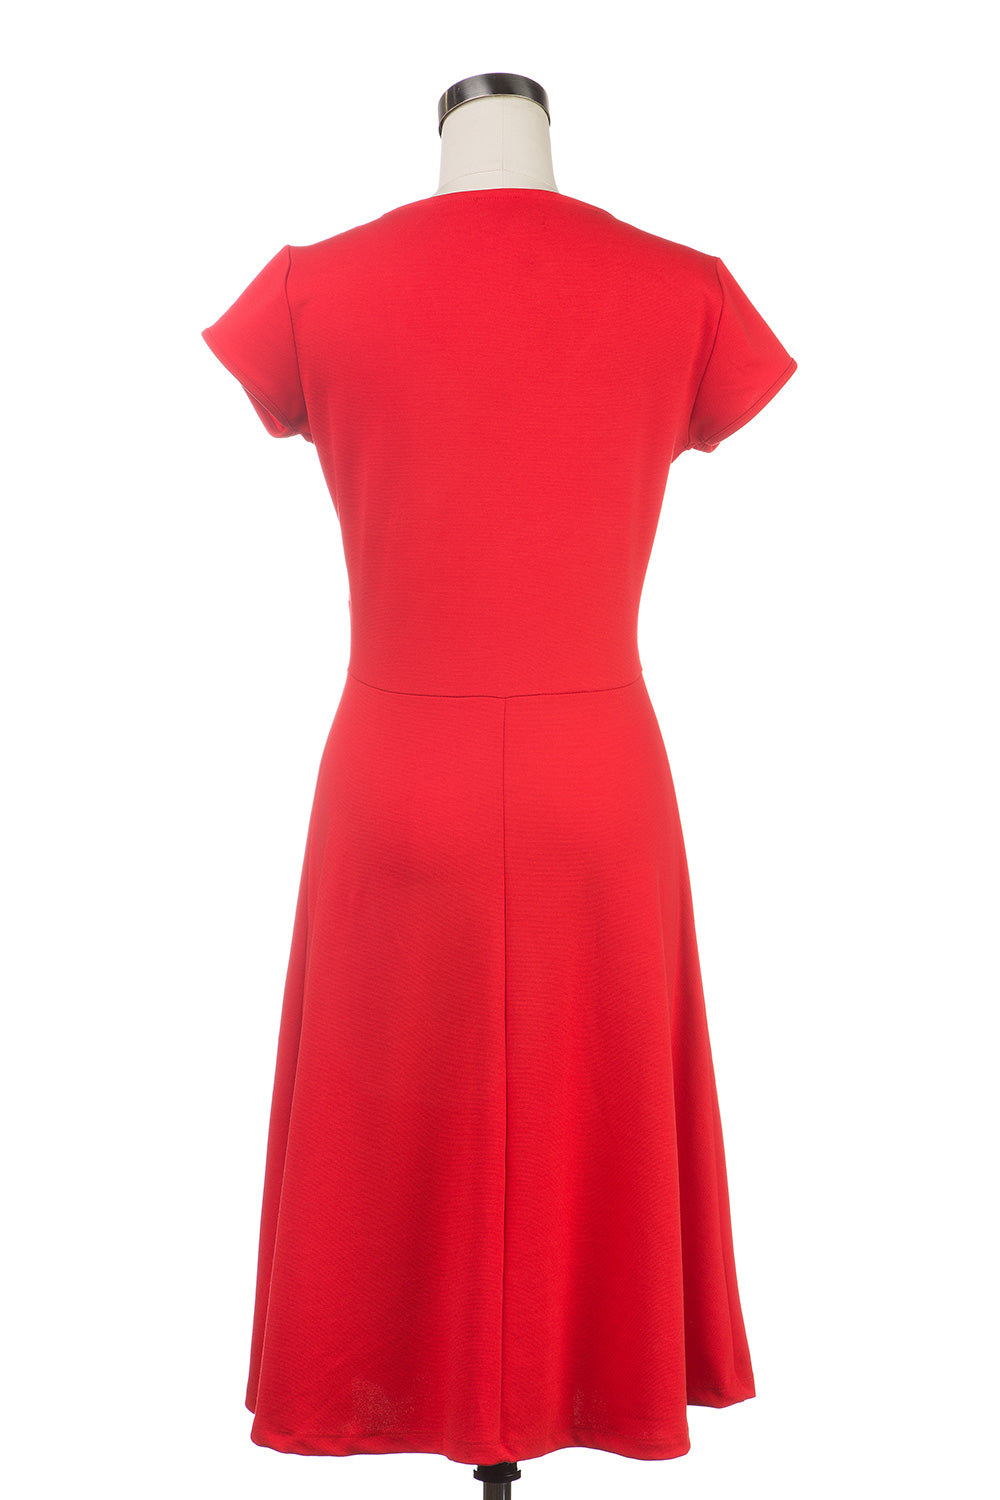 Type 4 Lunch Date Dress in Red